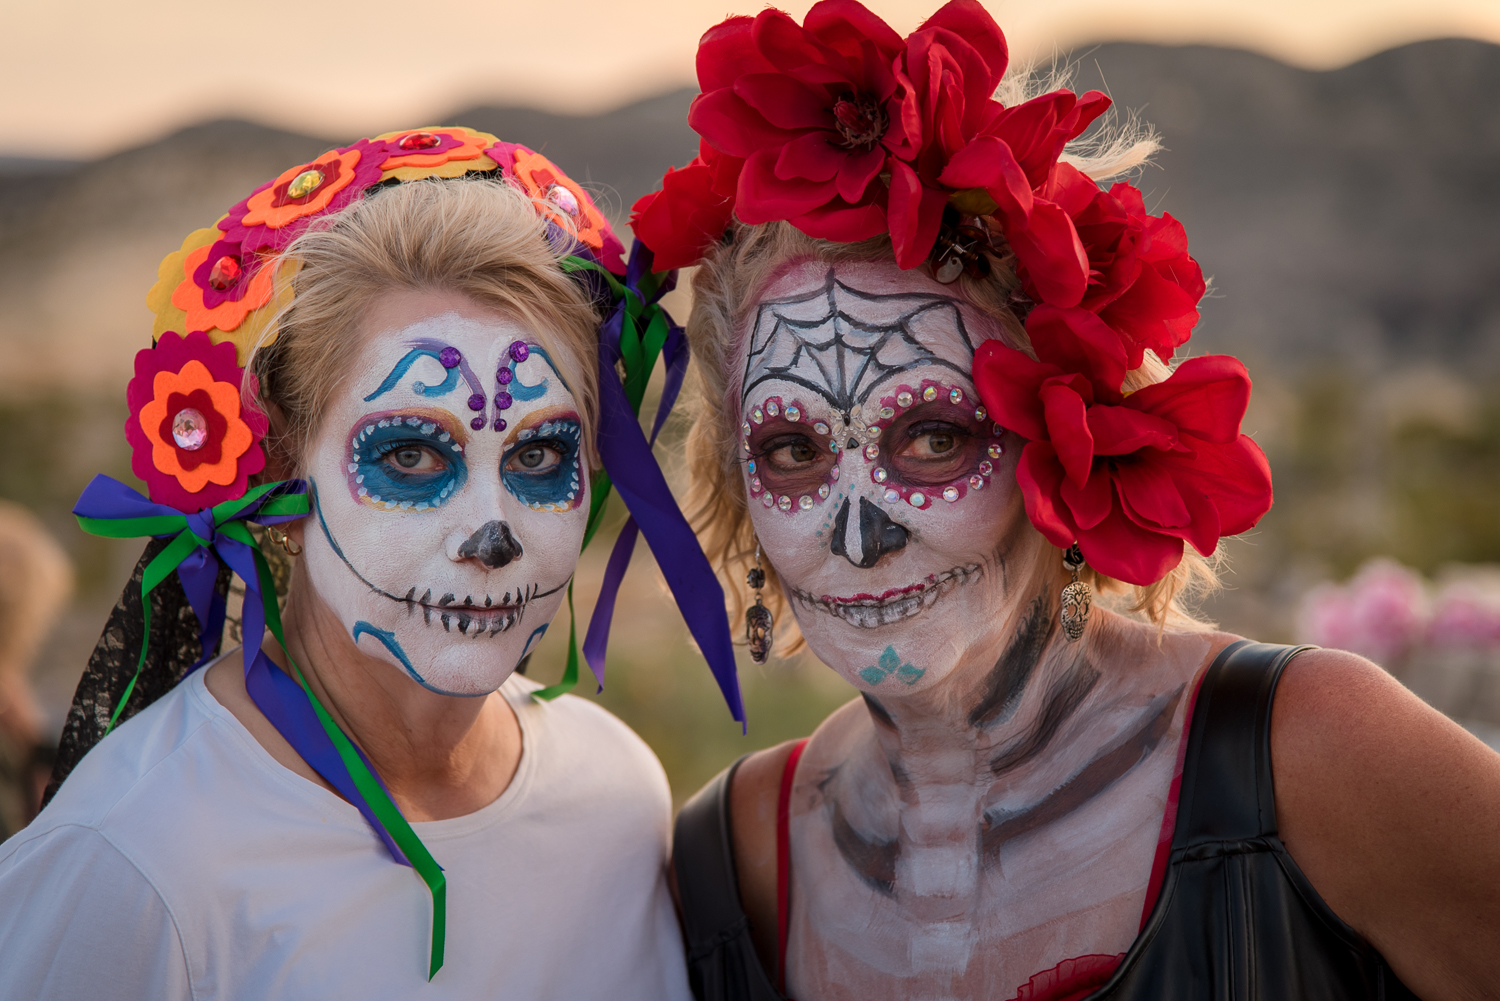 ©Ayash Basu. Day of the Dead celebrations in Terlingua, Texas. I took this image with the sun behind the women to get even light on their faces, avoiding unpleasant shadows.